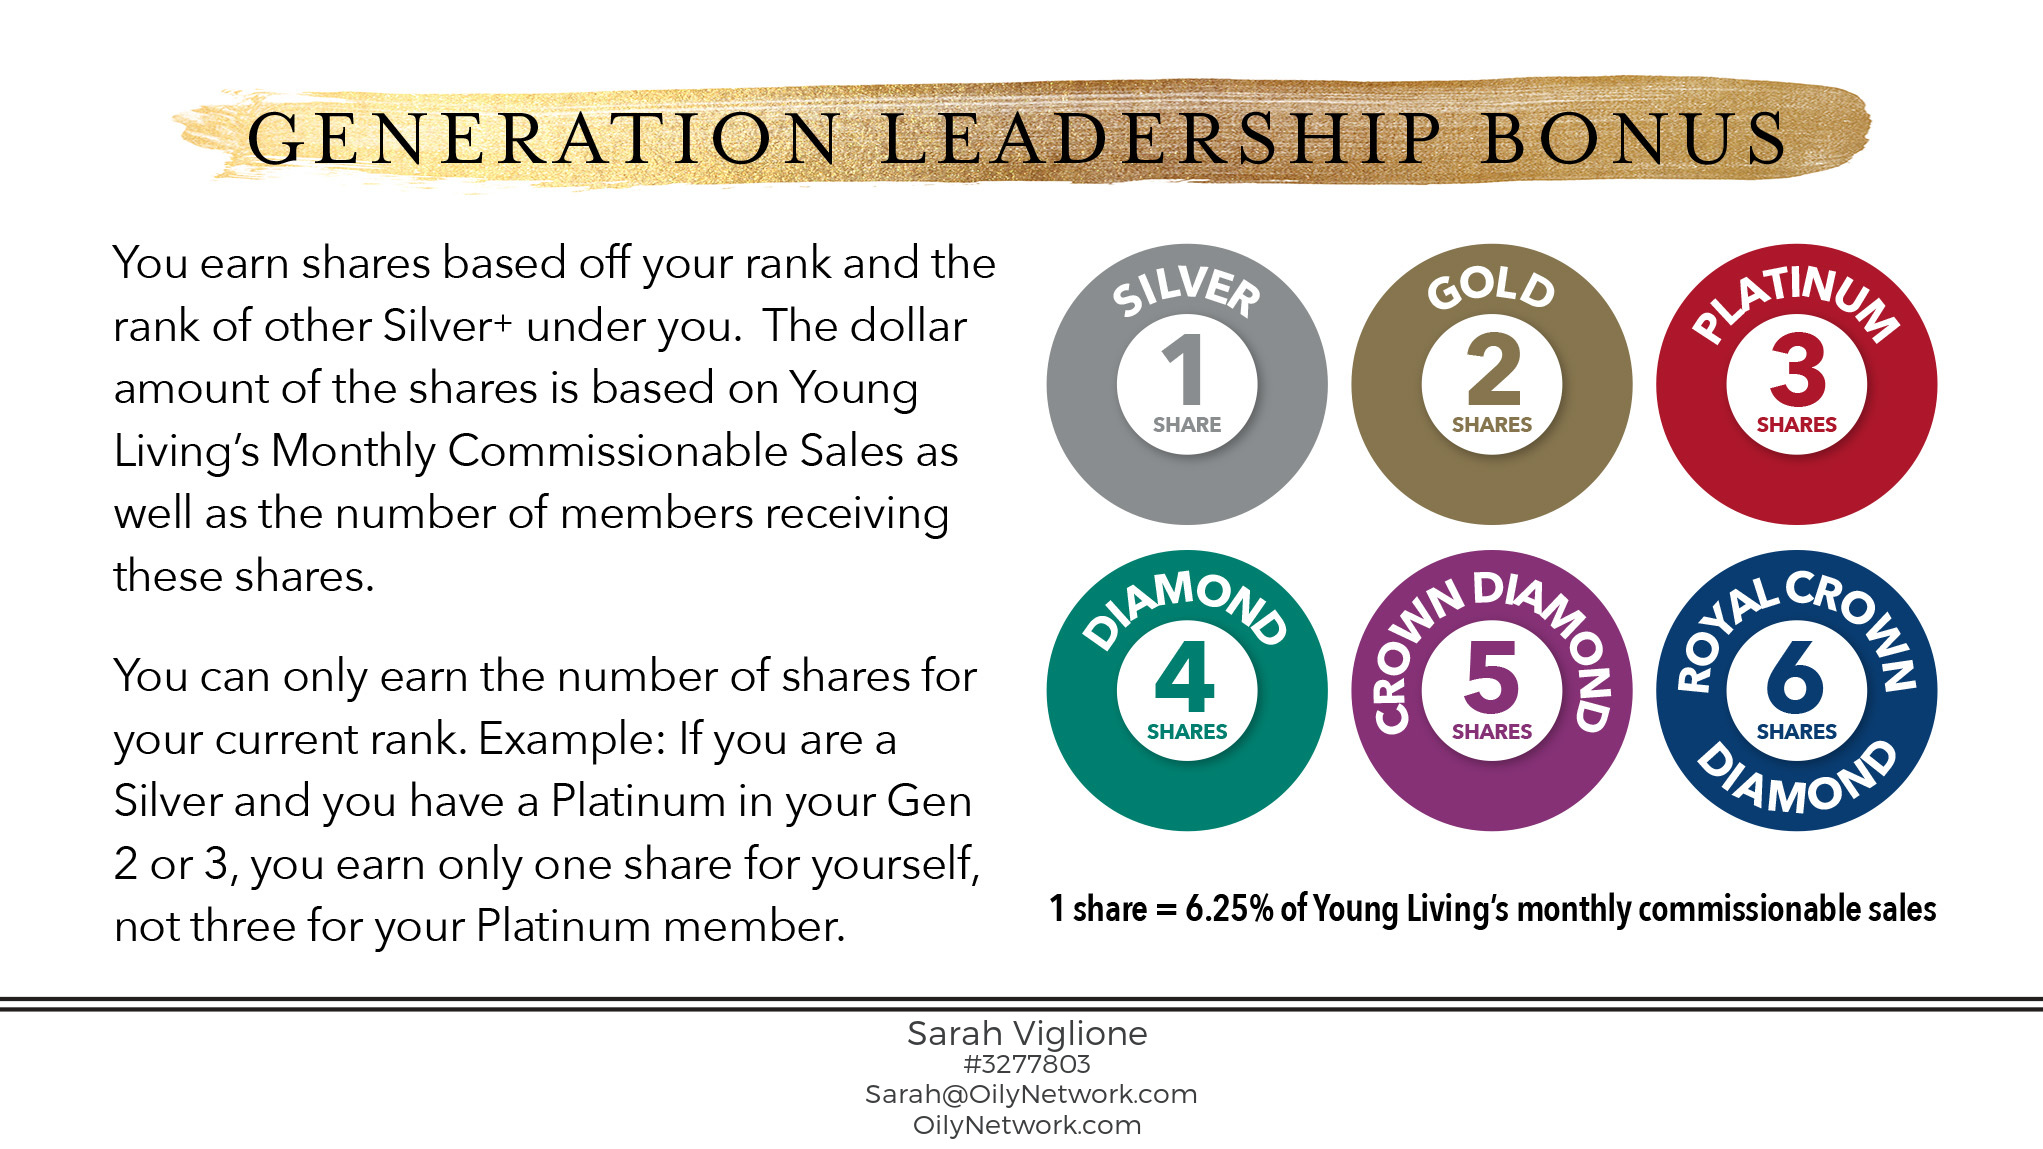 Generation Leadership Bonus